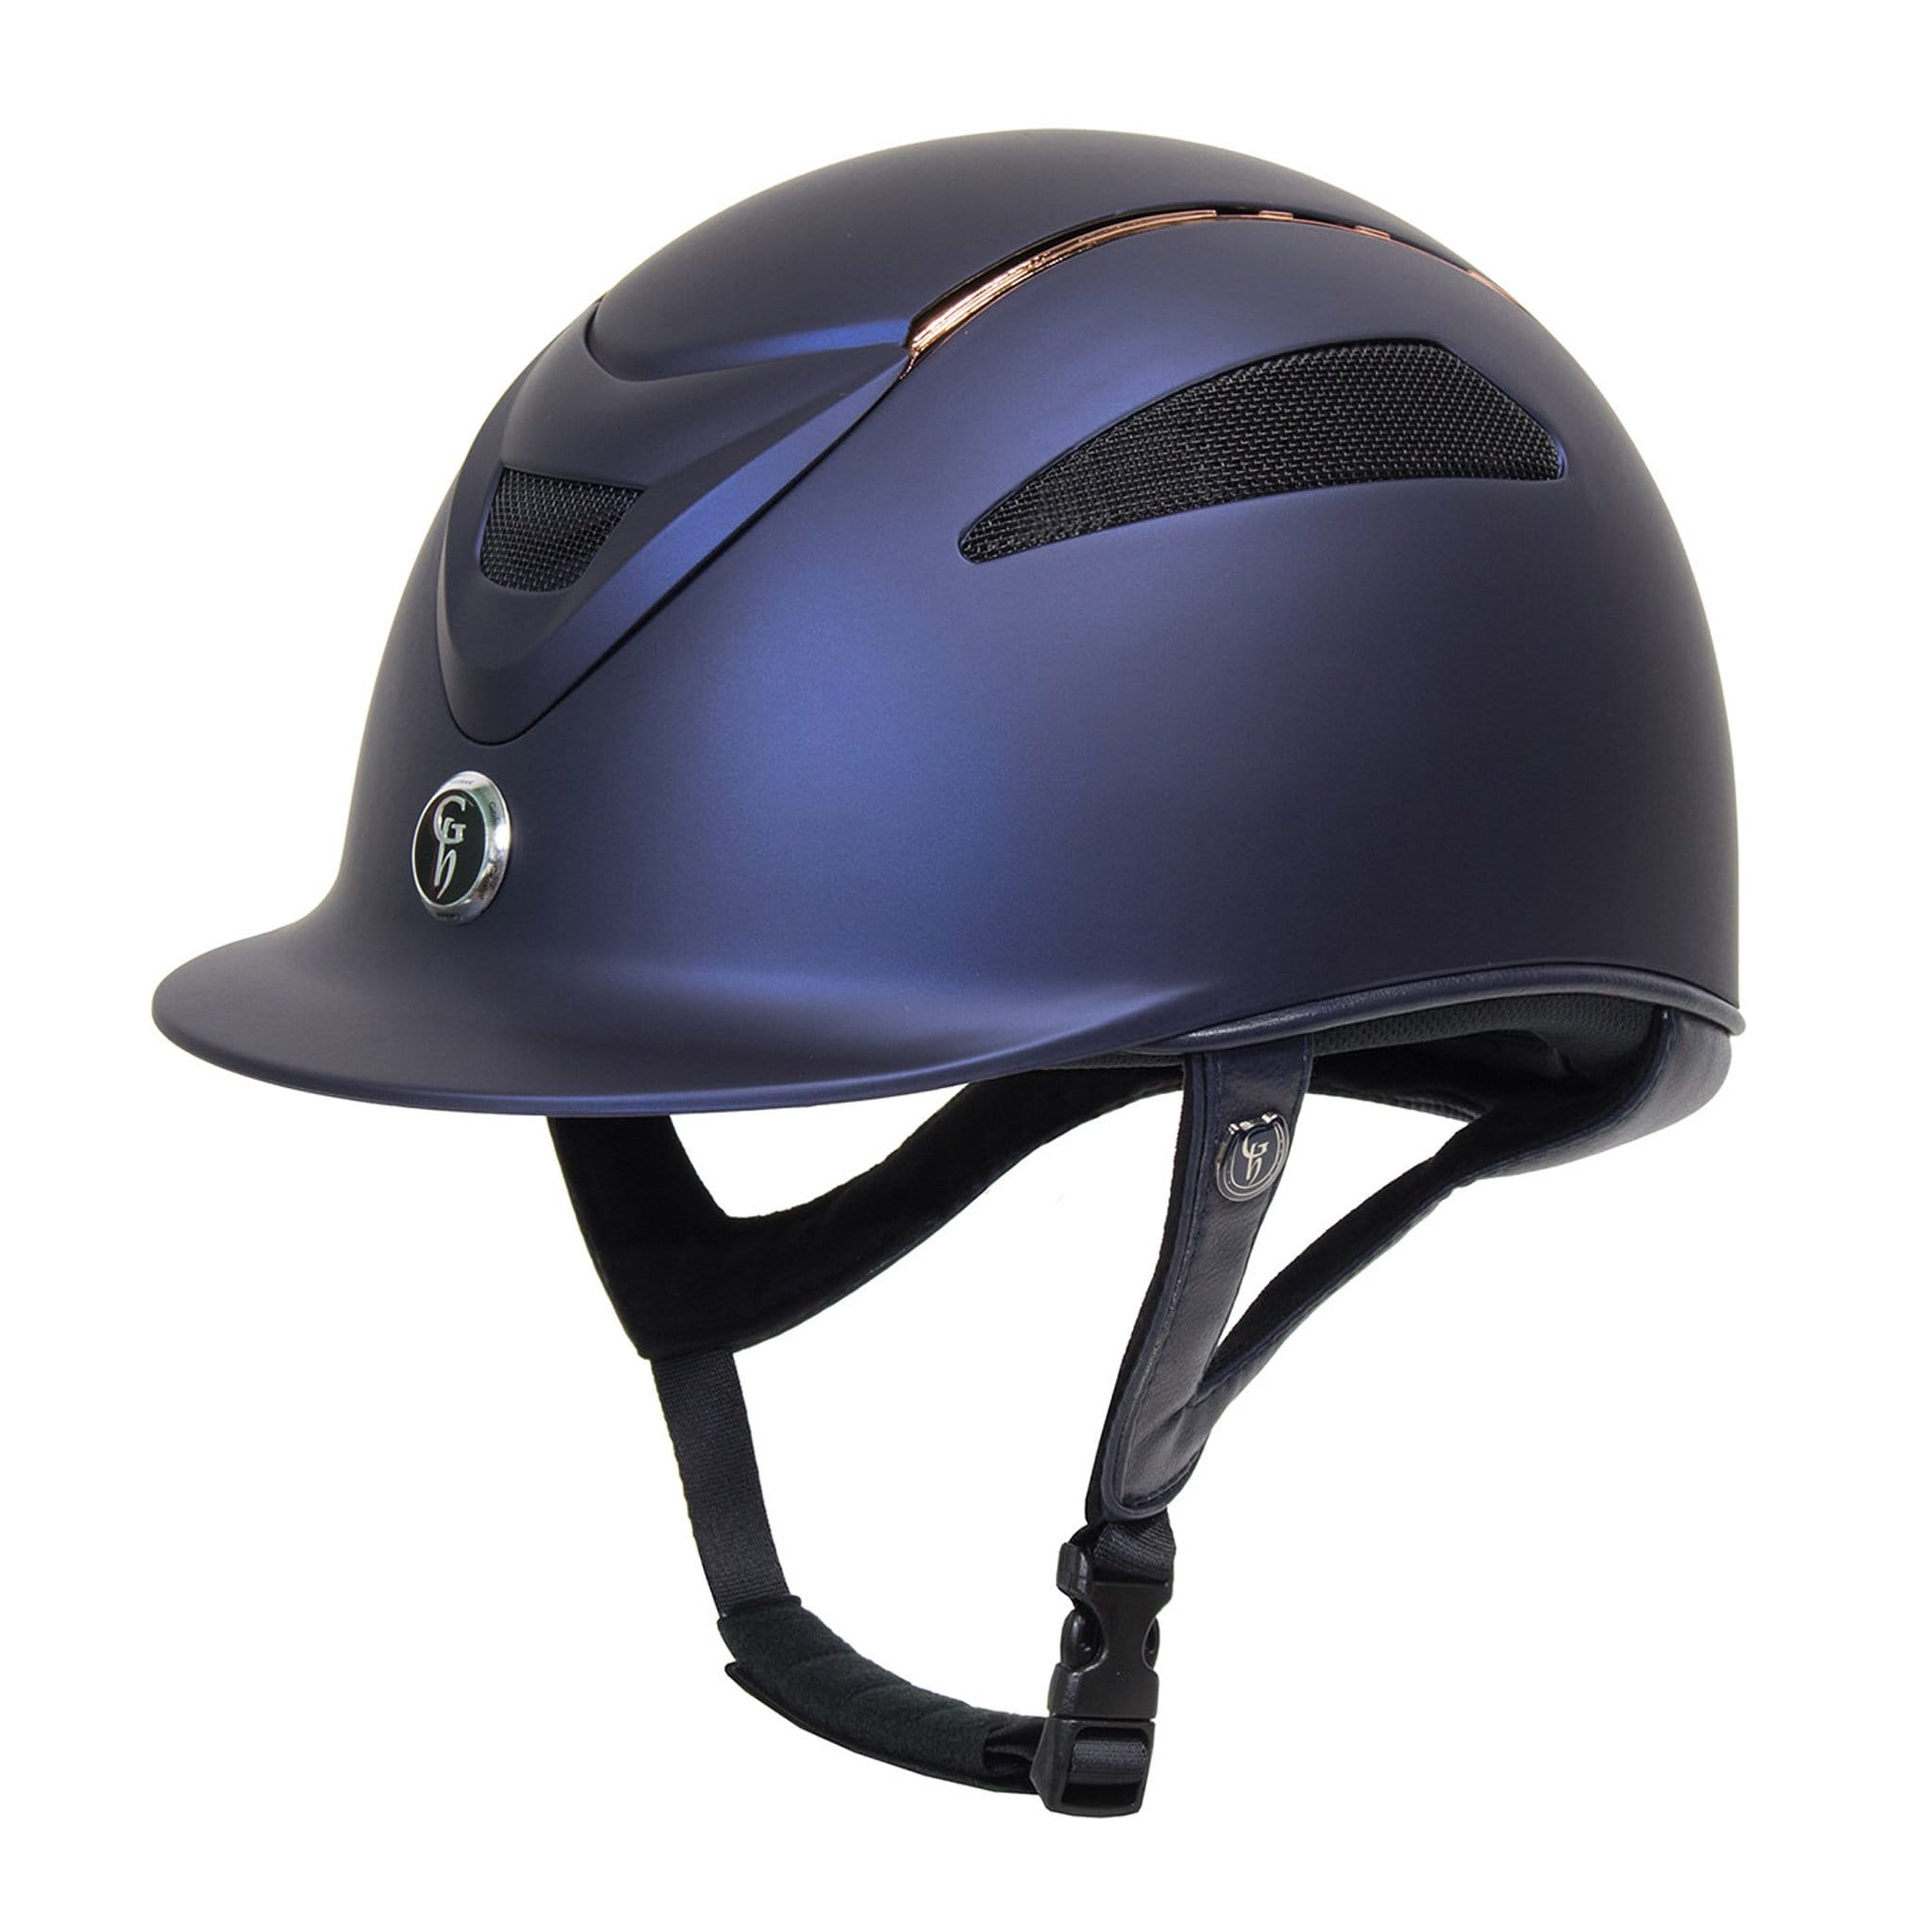 Gatehouse Conquest MKII Riding Hat Rose Gold Navy GAT308002.